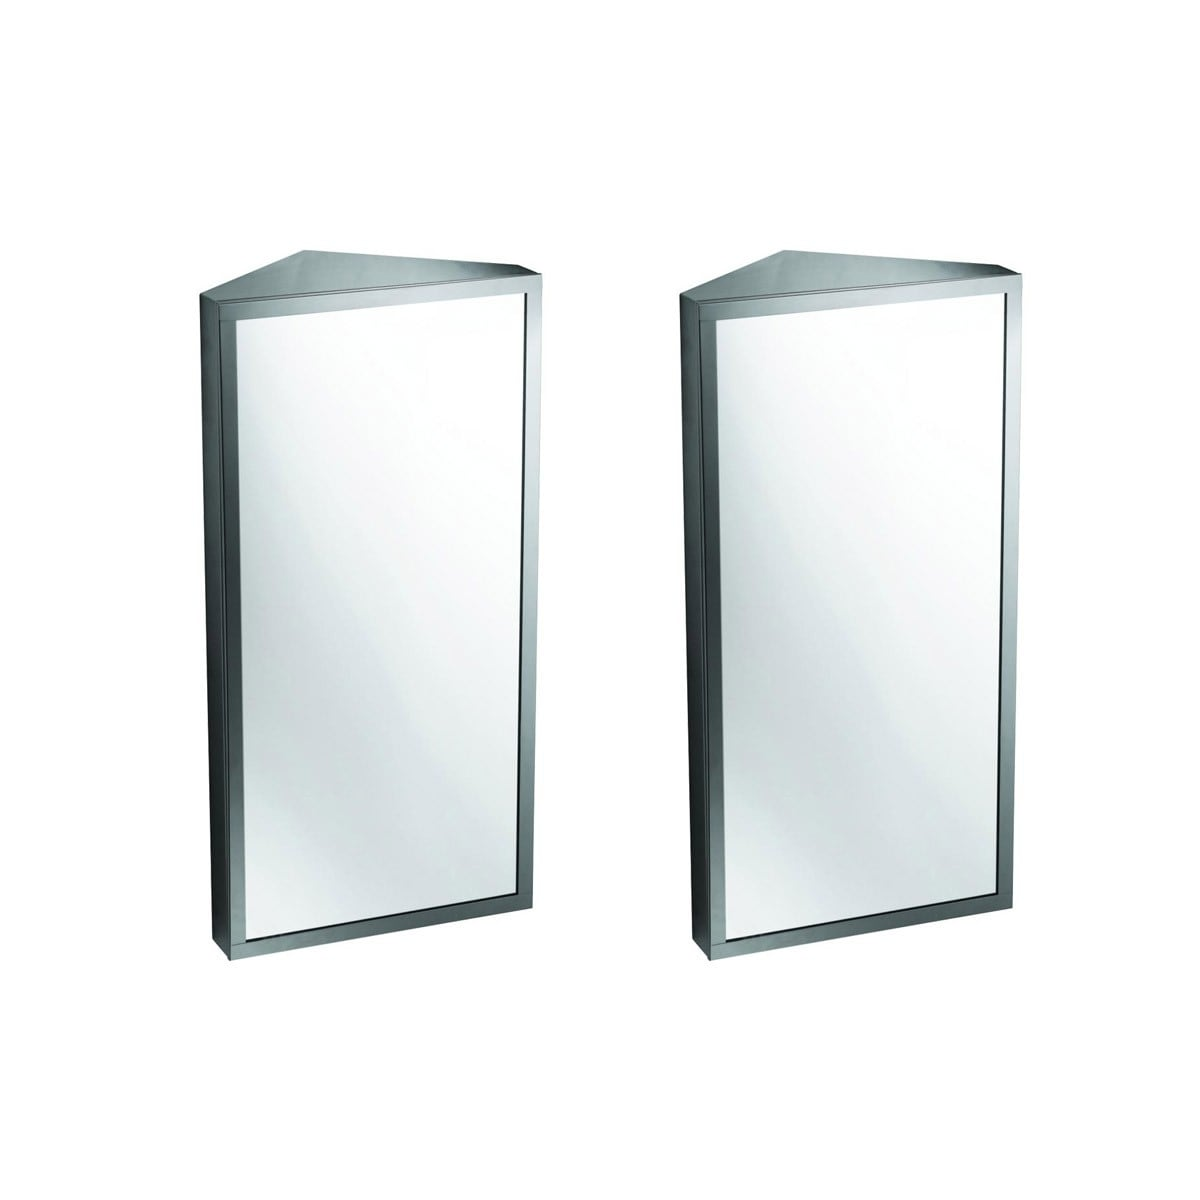 Picture of: Steel Corner Wall Mount Medicine Cabinet Brushed Finish Set Of 2 On Sale Overstock 18085822